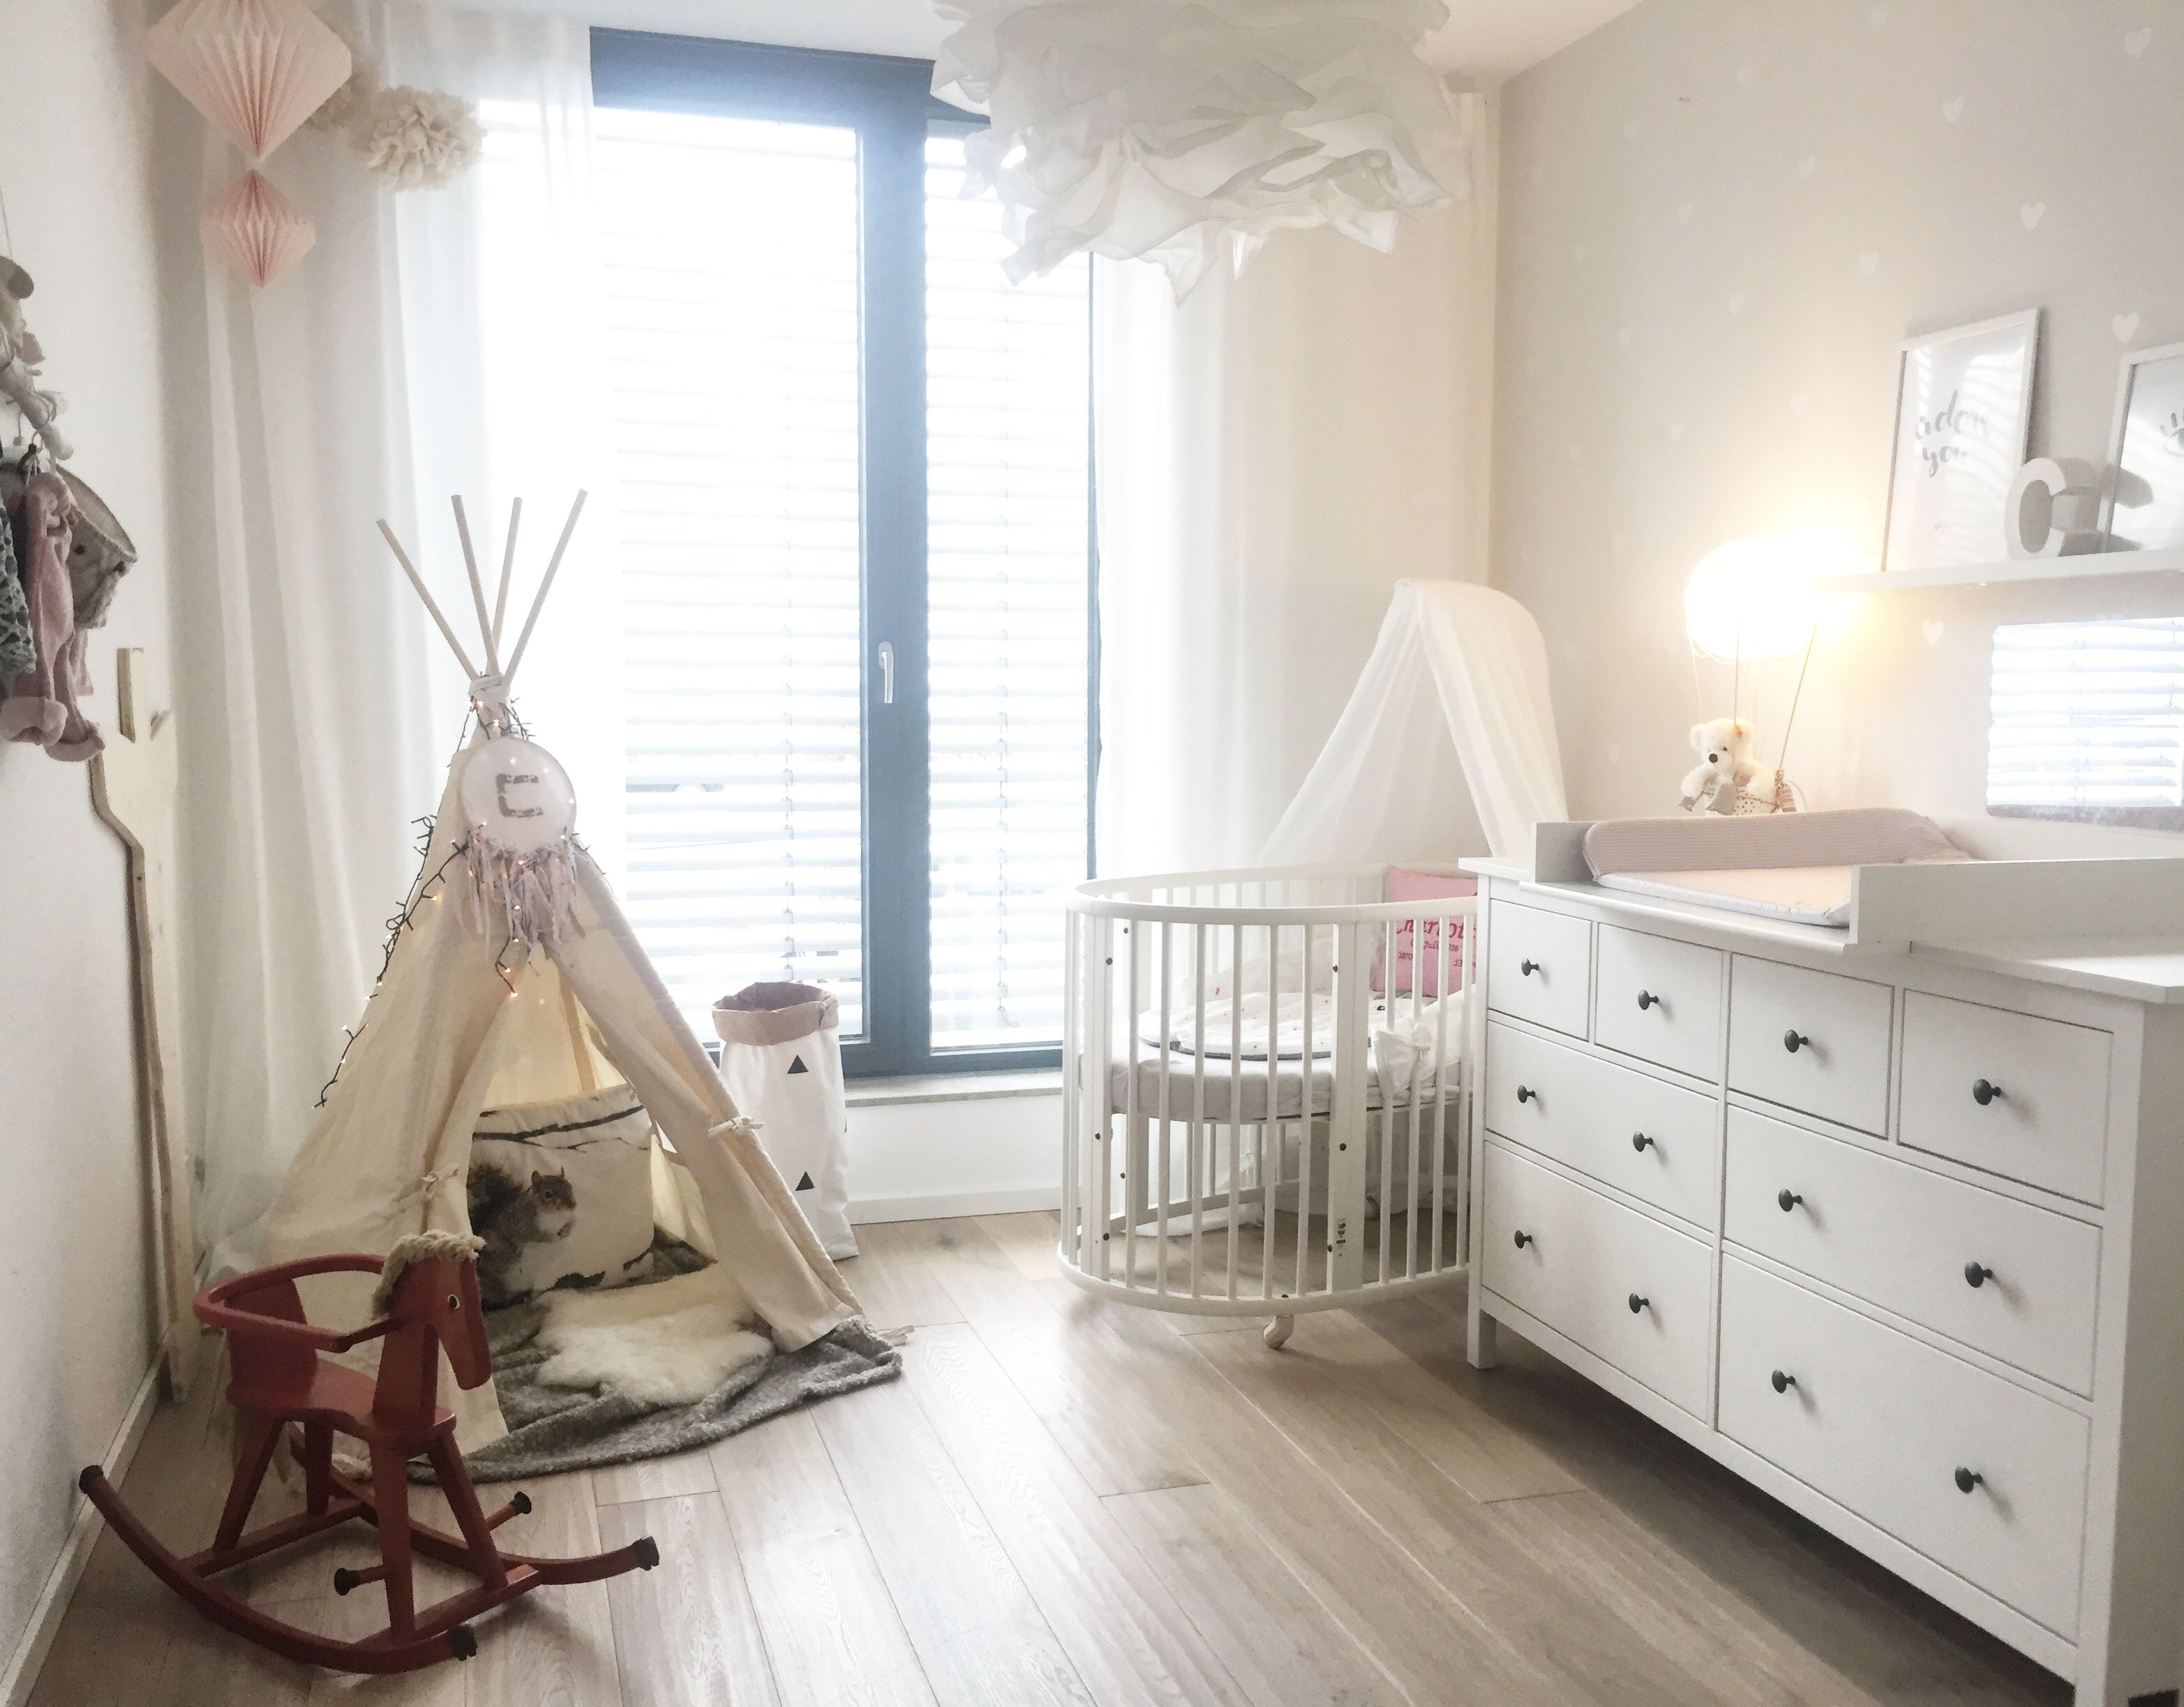 kinderzimmer babyzimmer tipi indianer ikea hemnes wickelkommode stokke ikea baby pinterest. Black Bedroom Furniture Sets. Home Design Ideas